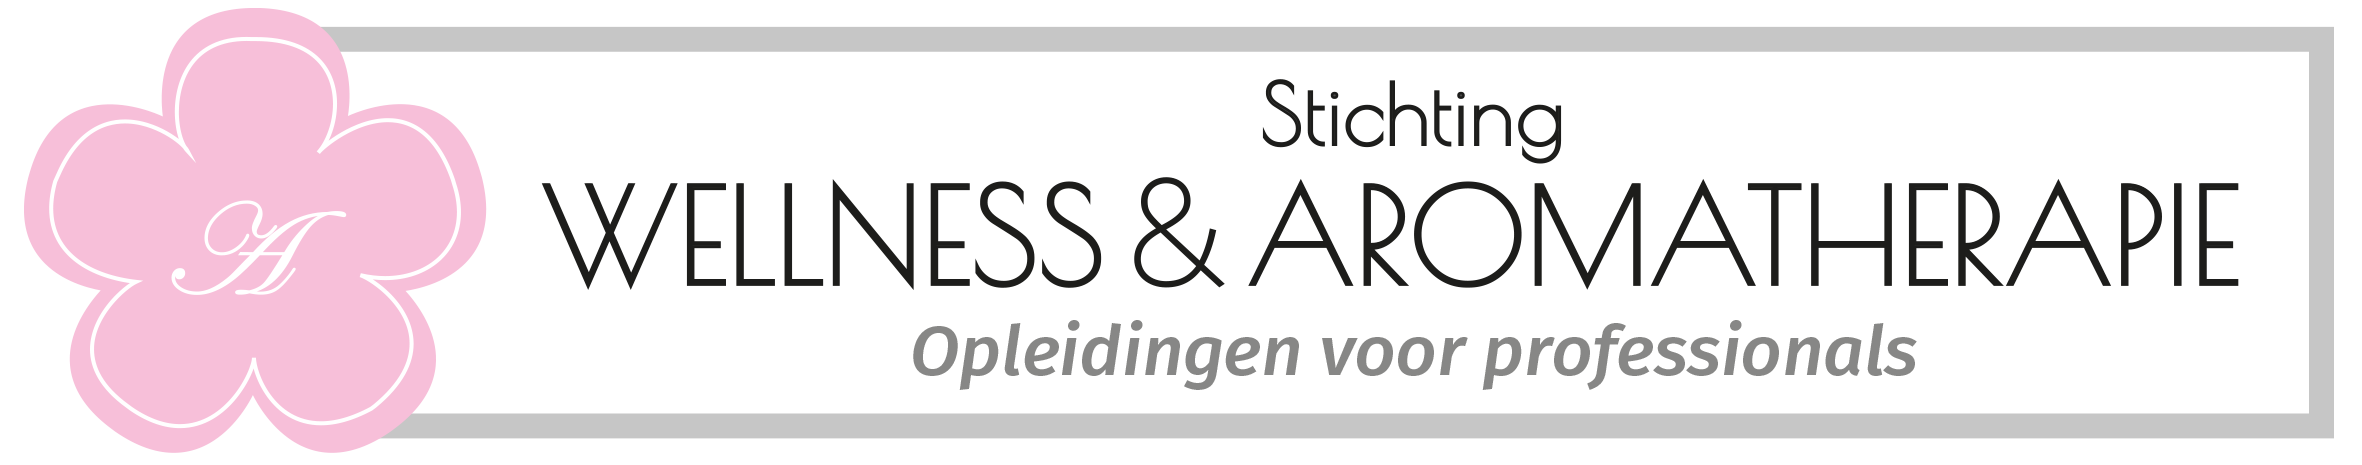 Stichting Wellness & Aromatherapie